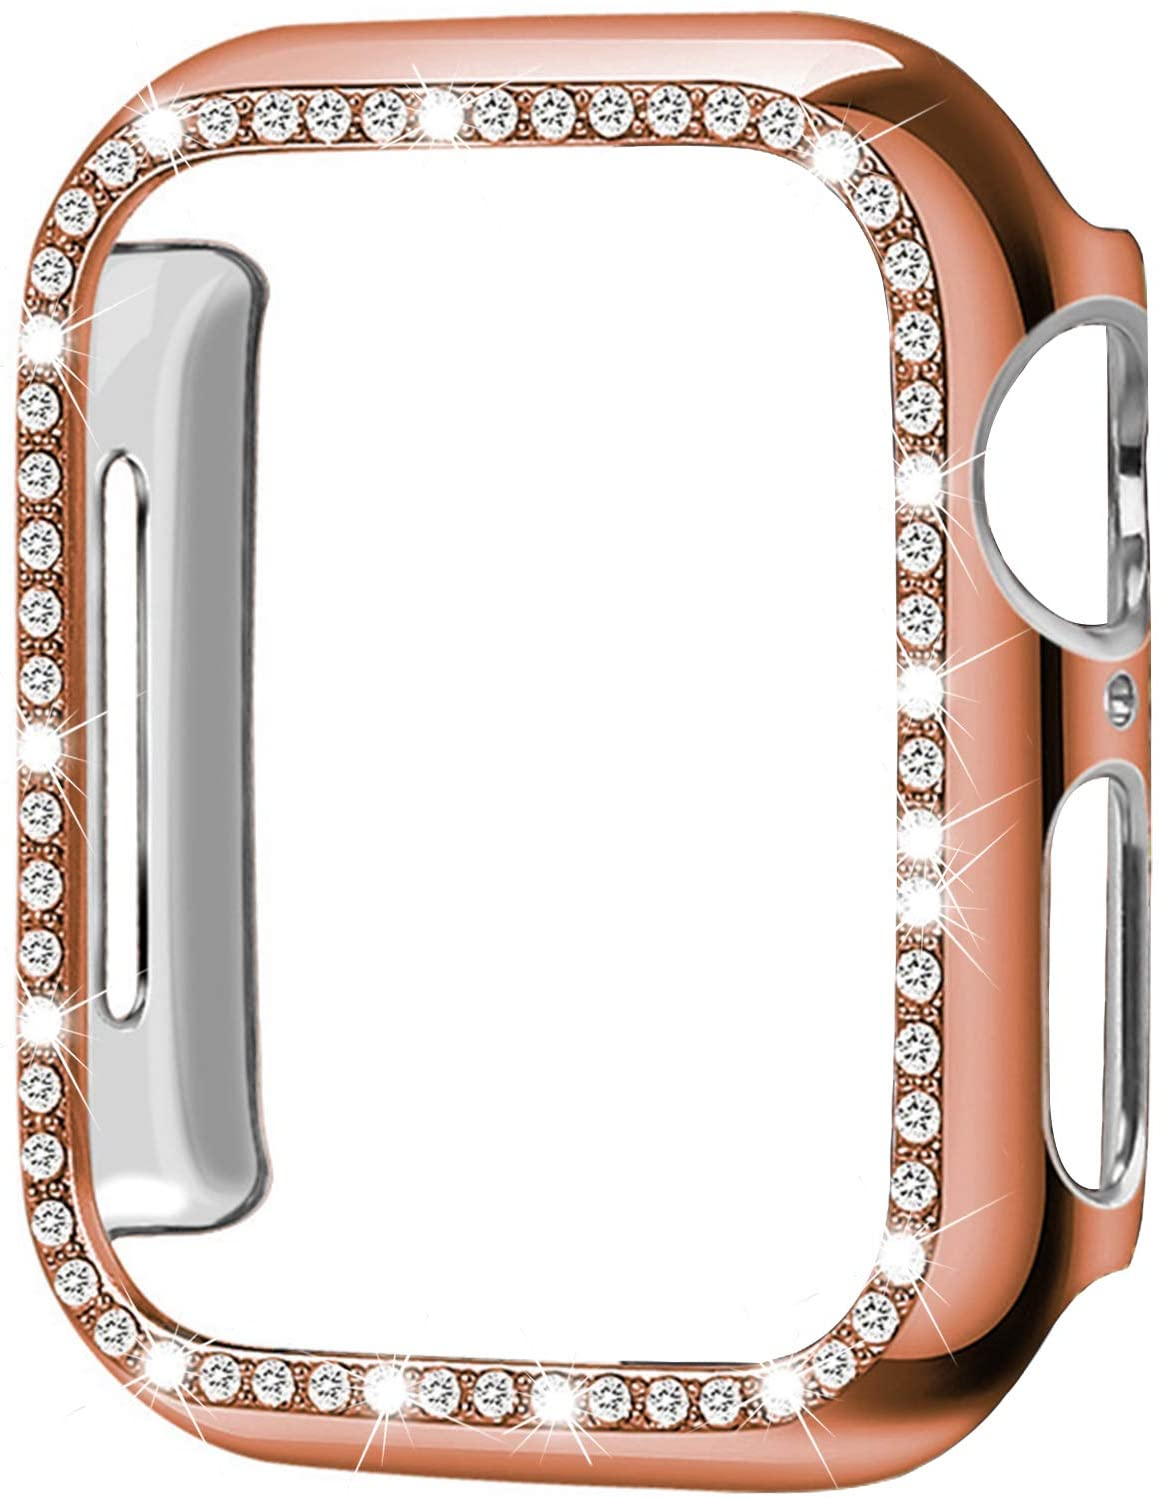 [1-Pack] ALADRS Bling Hard Bumper Frame Compatible with Apple Watch 44mm Case, Shiny Crystal Diamonds Protective Cover for iWatch Series 6 Series 5 Series 4 SE (Rose Gold 44mm)